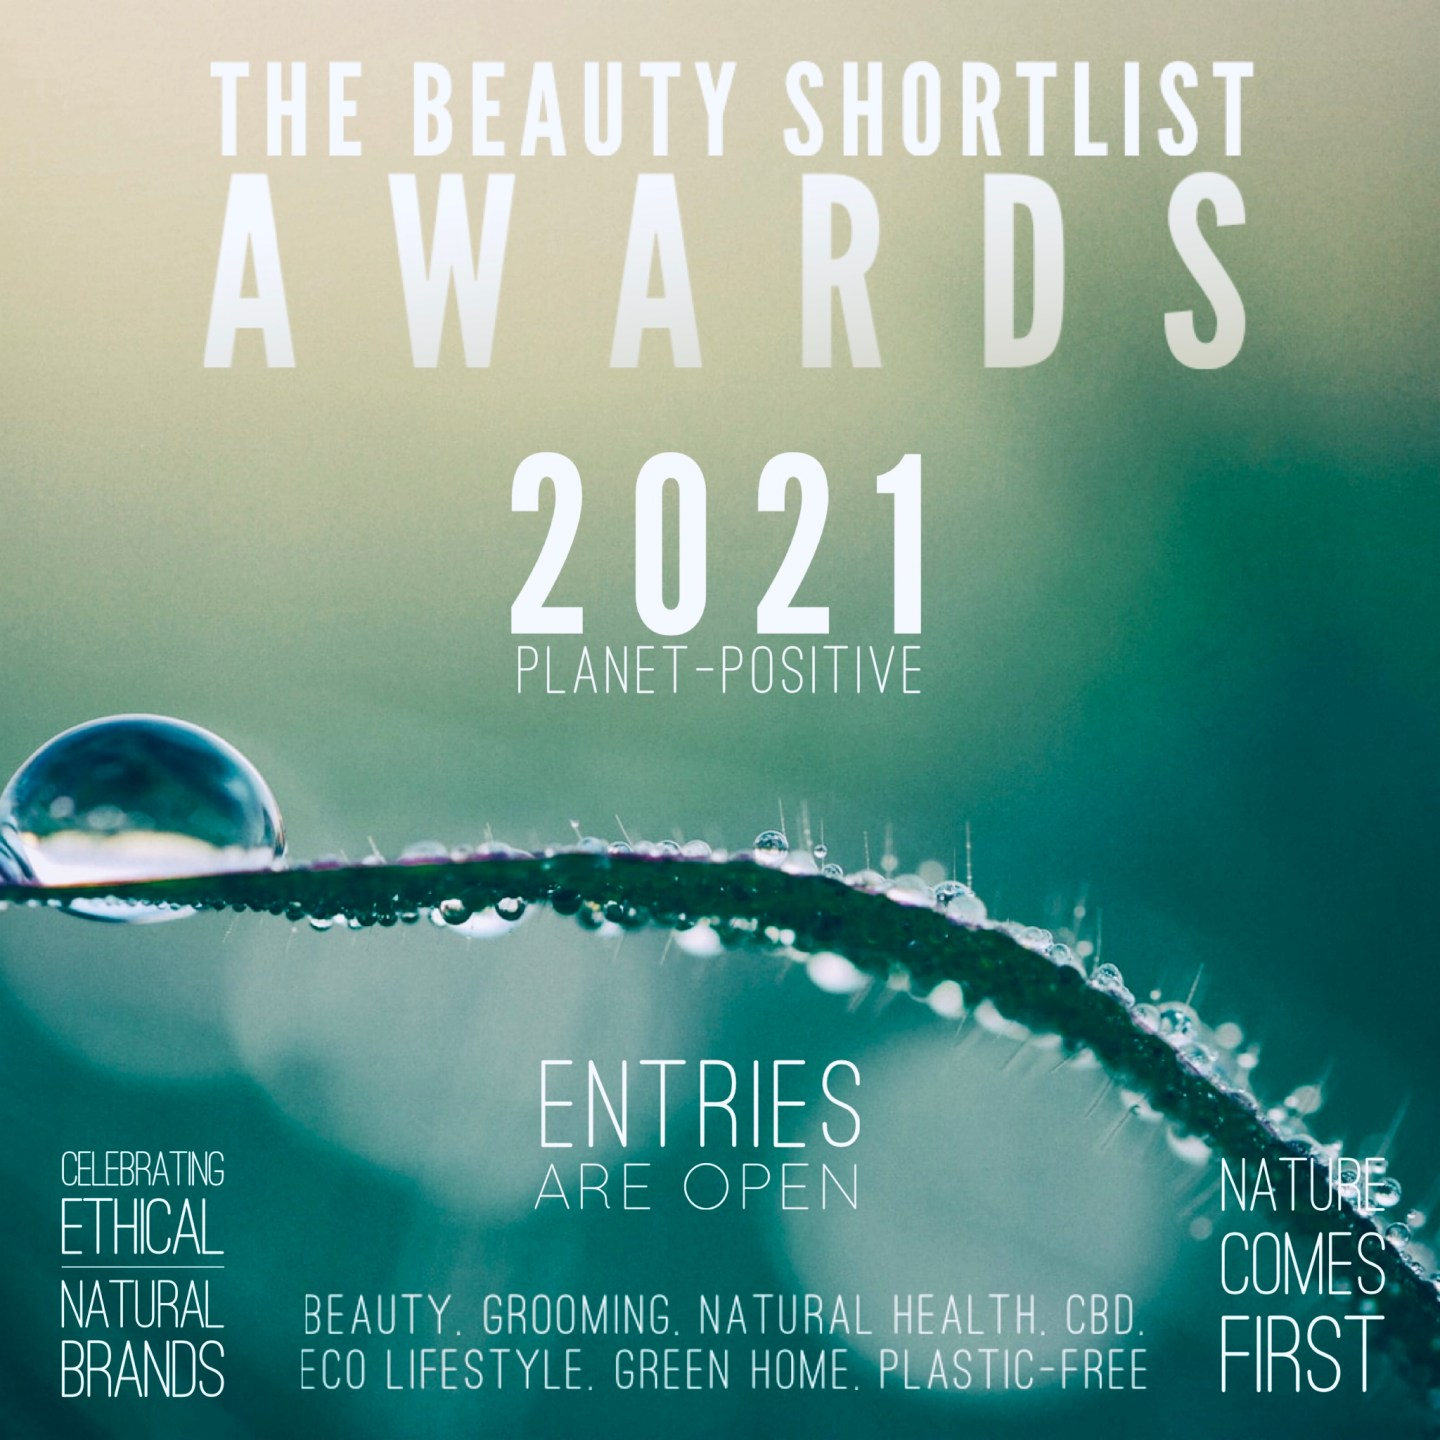 Best Mascara For Sensitive Eyes 2021 2021 BEAUTY SHORTLIST AWARDS ENTRY FORM – The Beauty Shortlist